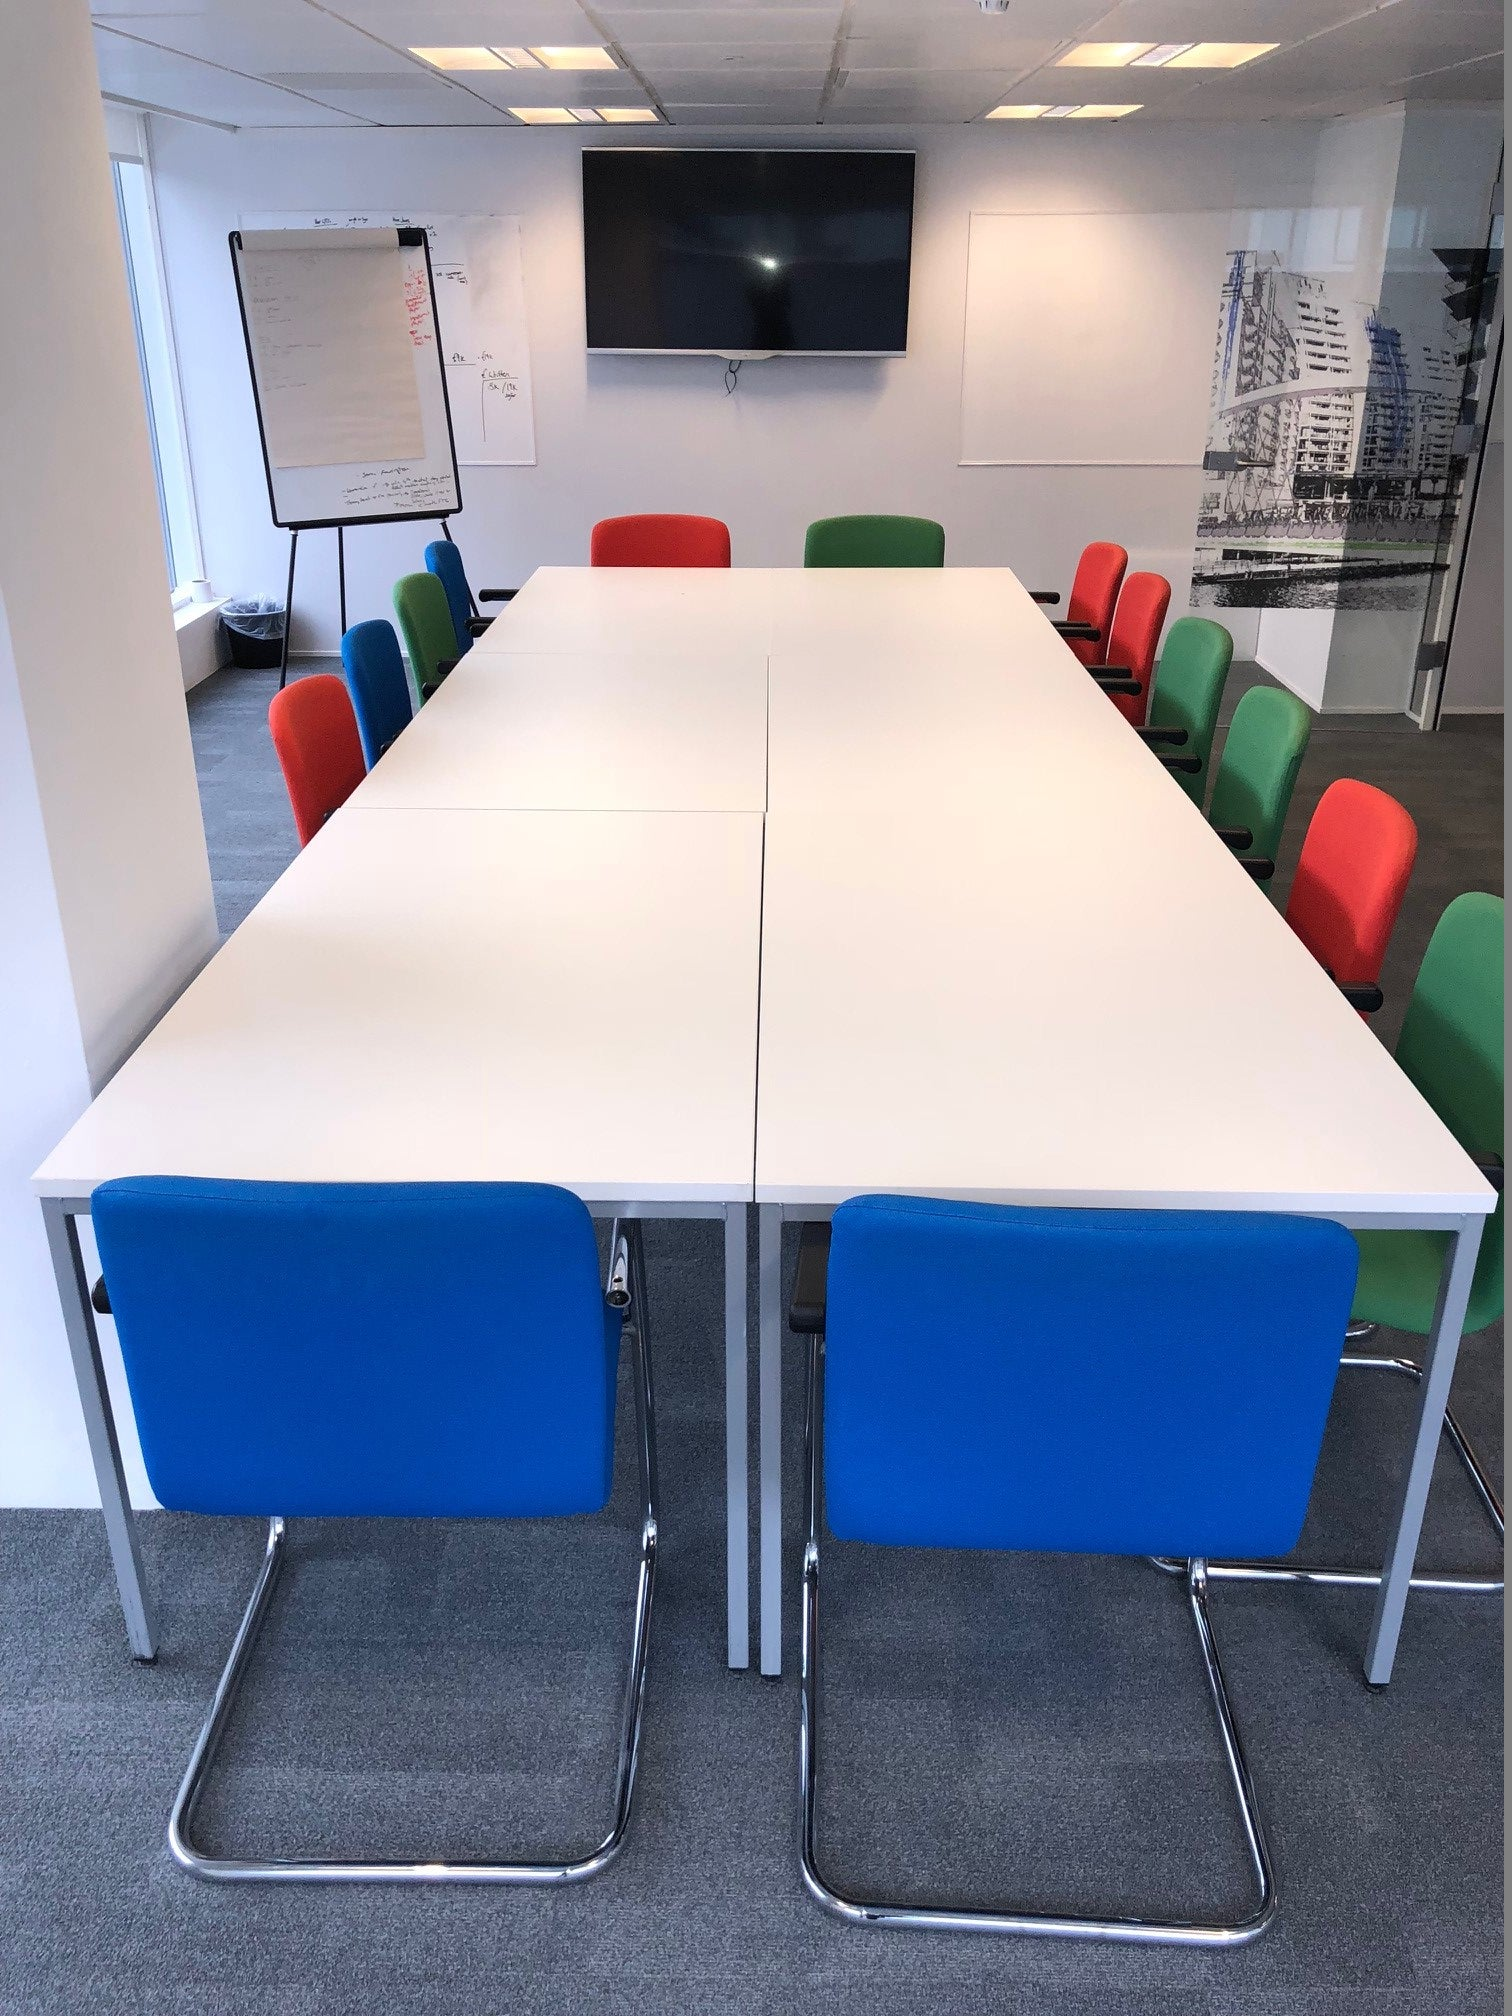 White Modular 48-48 Person Meeting Table – Flogit48us.com